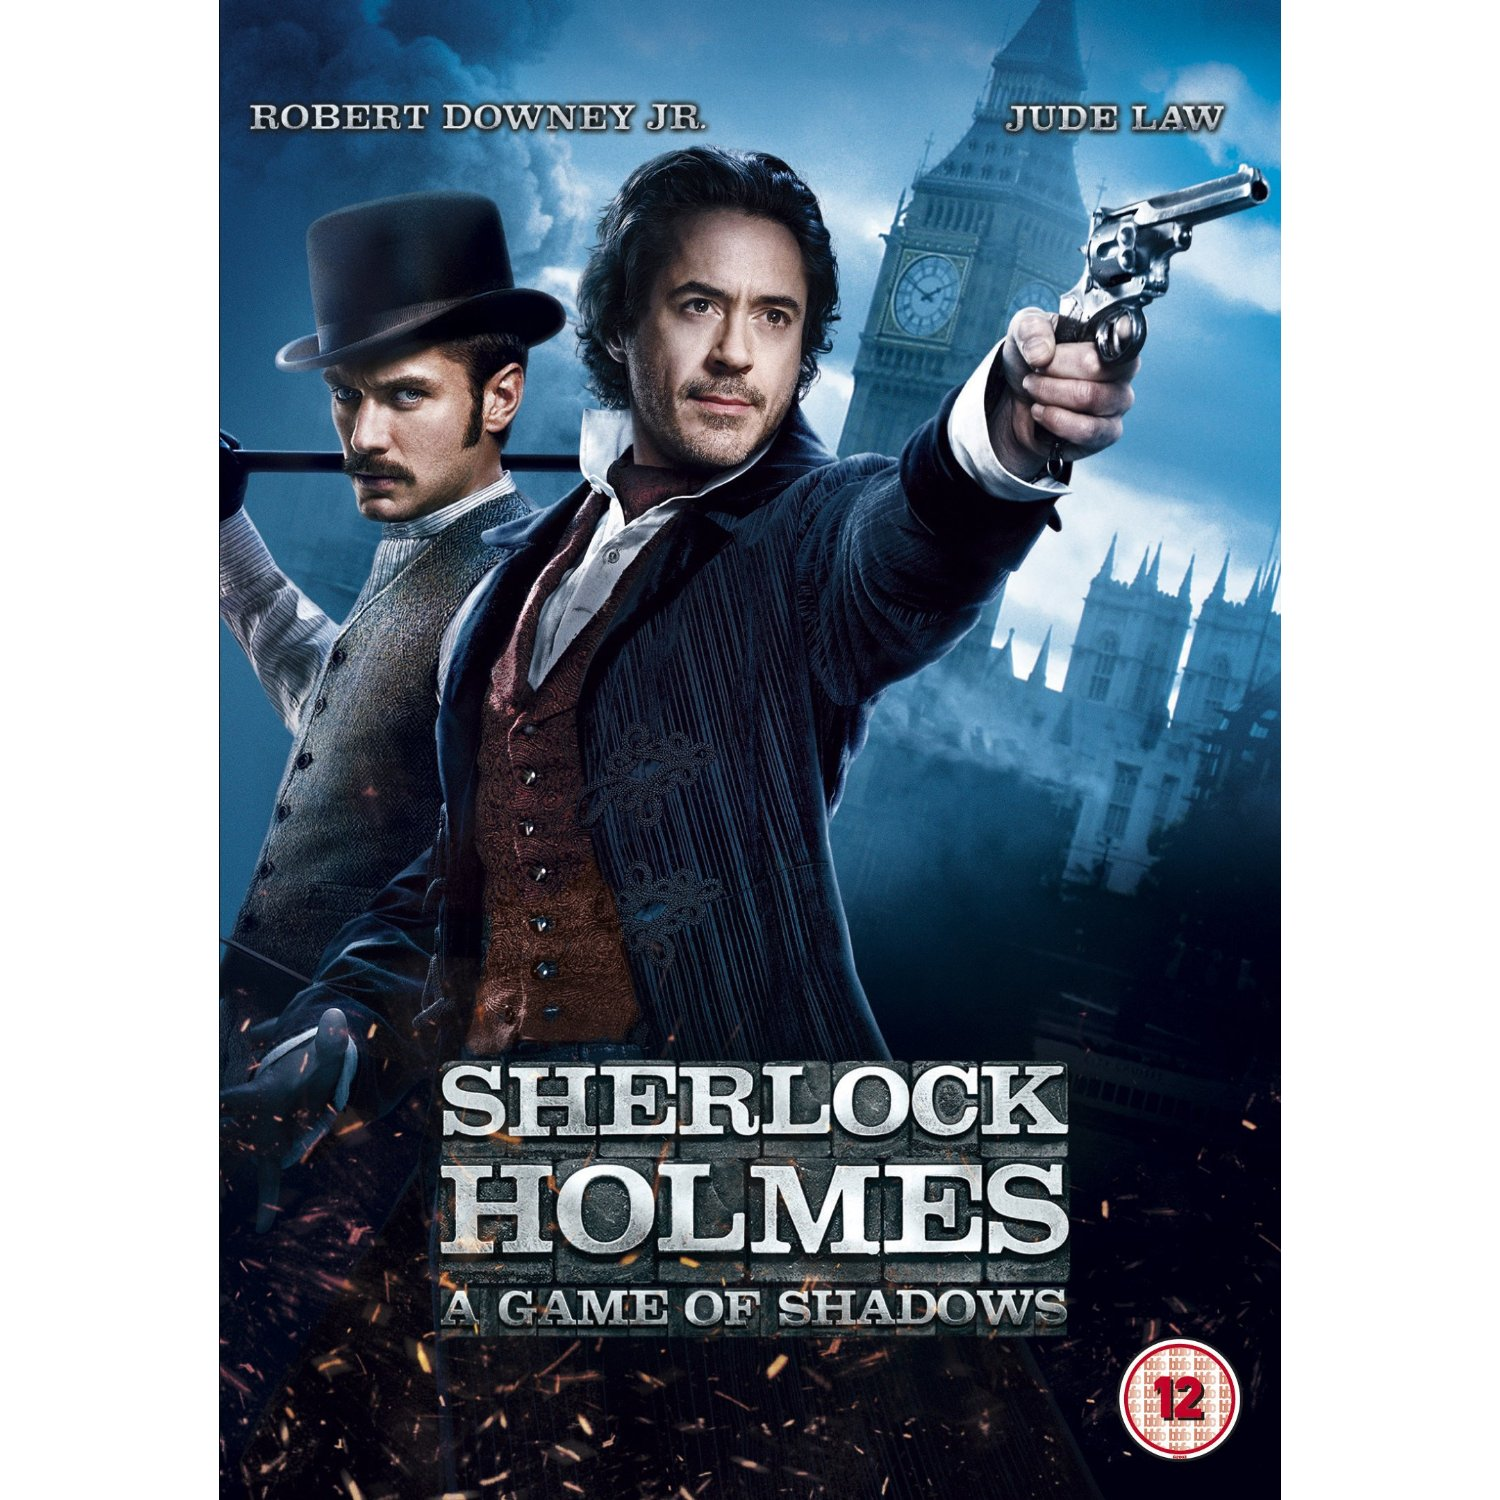 Sherlock Holmes: A Game of Shadows | The Collectors Wiki ...